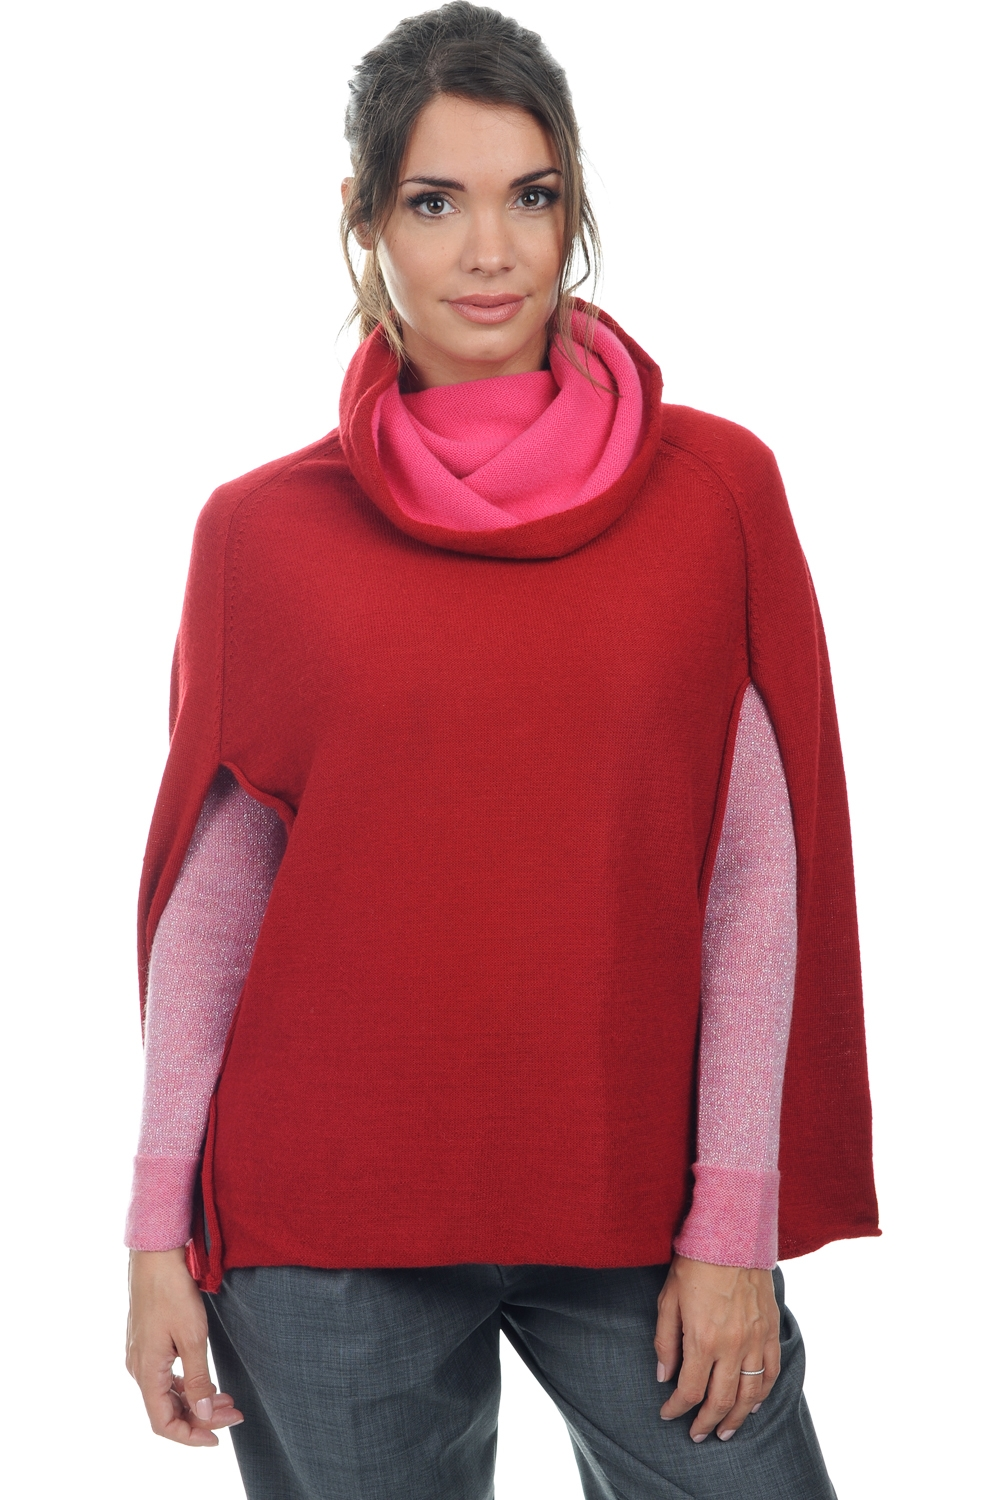 baby alpaga  cachemire pull femme col roule briana rouge taille unique